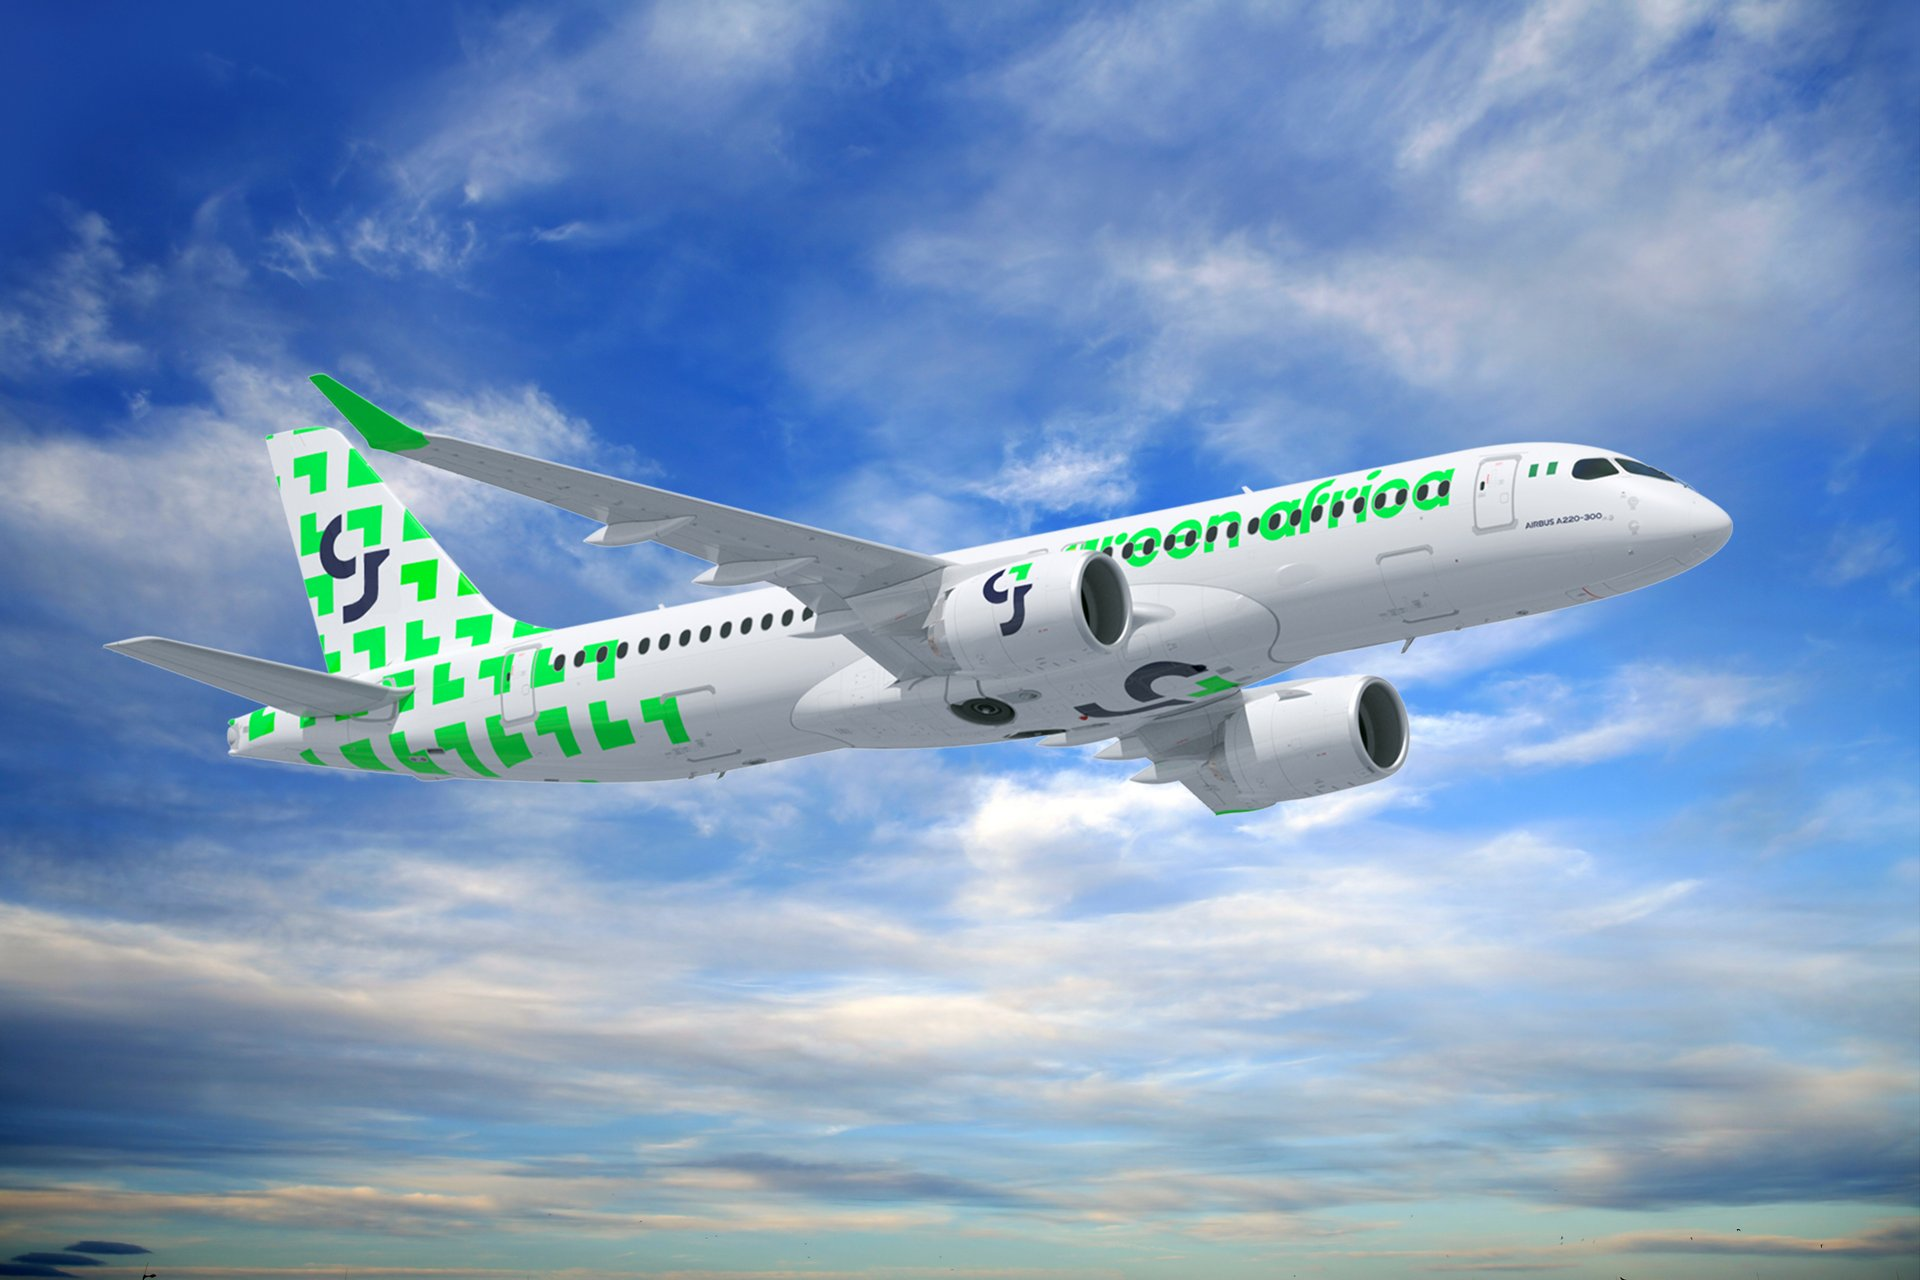 Green Africa Airways has signed a Memorandum of Understanding (MoU) for 50 A220-300 aircraft.